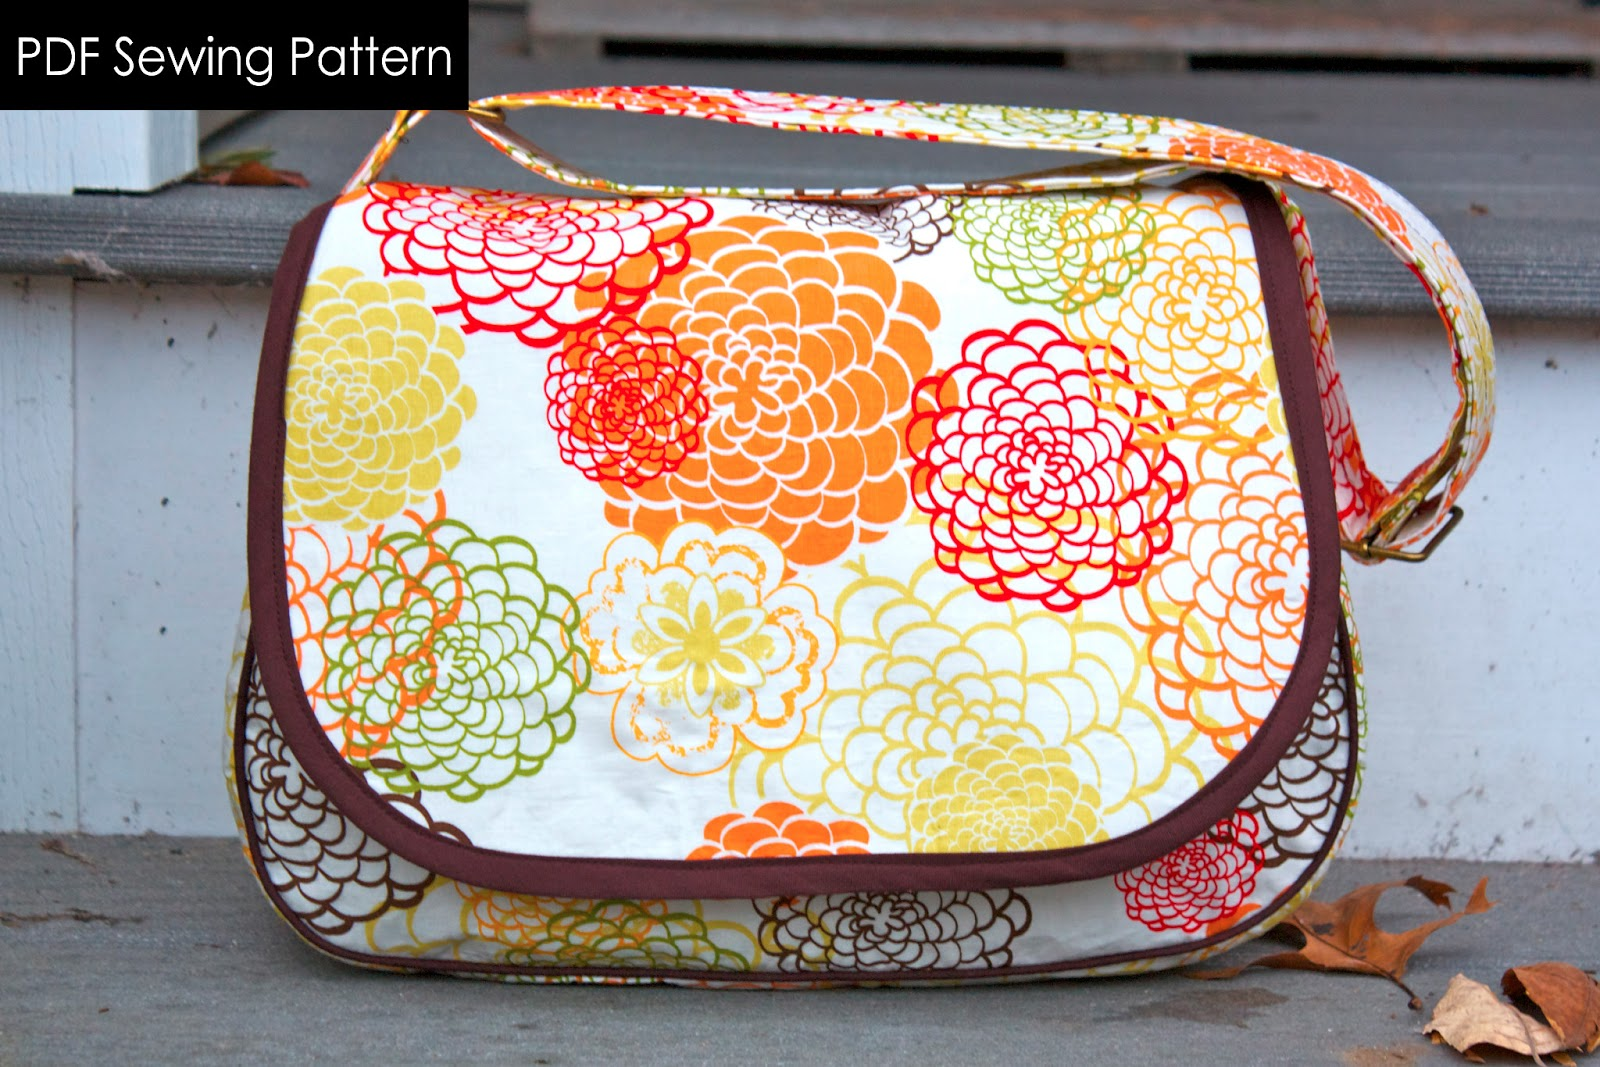 Zaaberry mirabelle messenger bag mirabelle messenger bag a 14 page full color instant download pdf sewing pattern read more about this bag here jeuxipadfo Choice Image